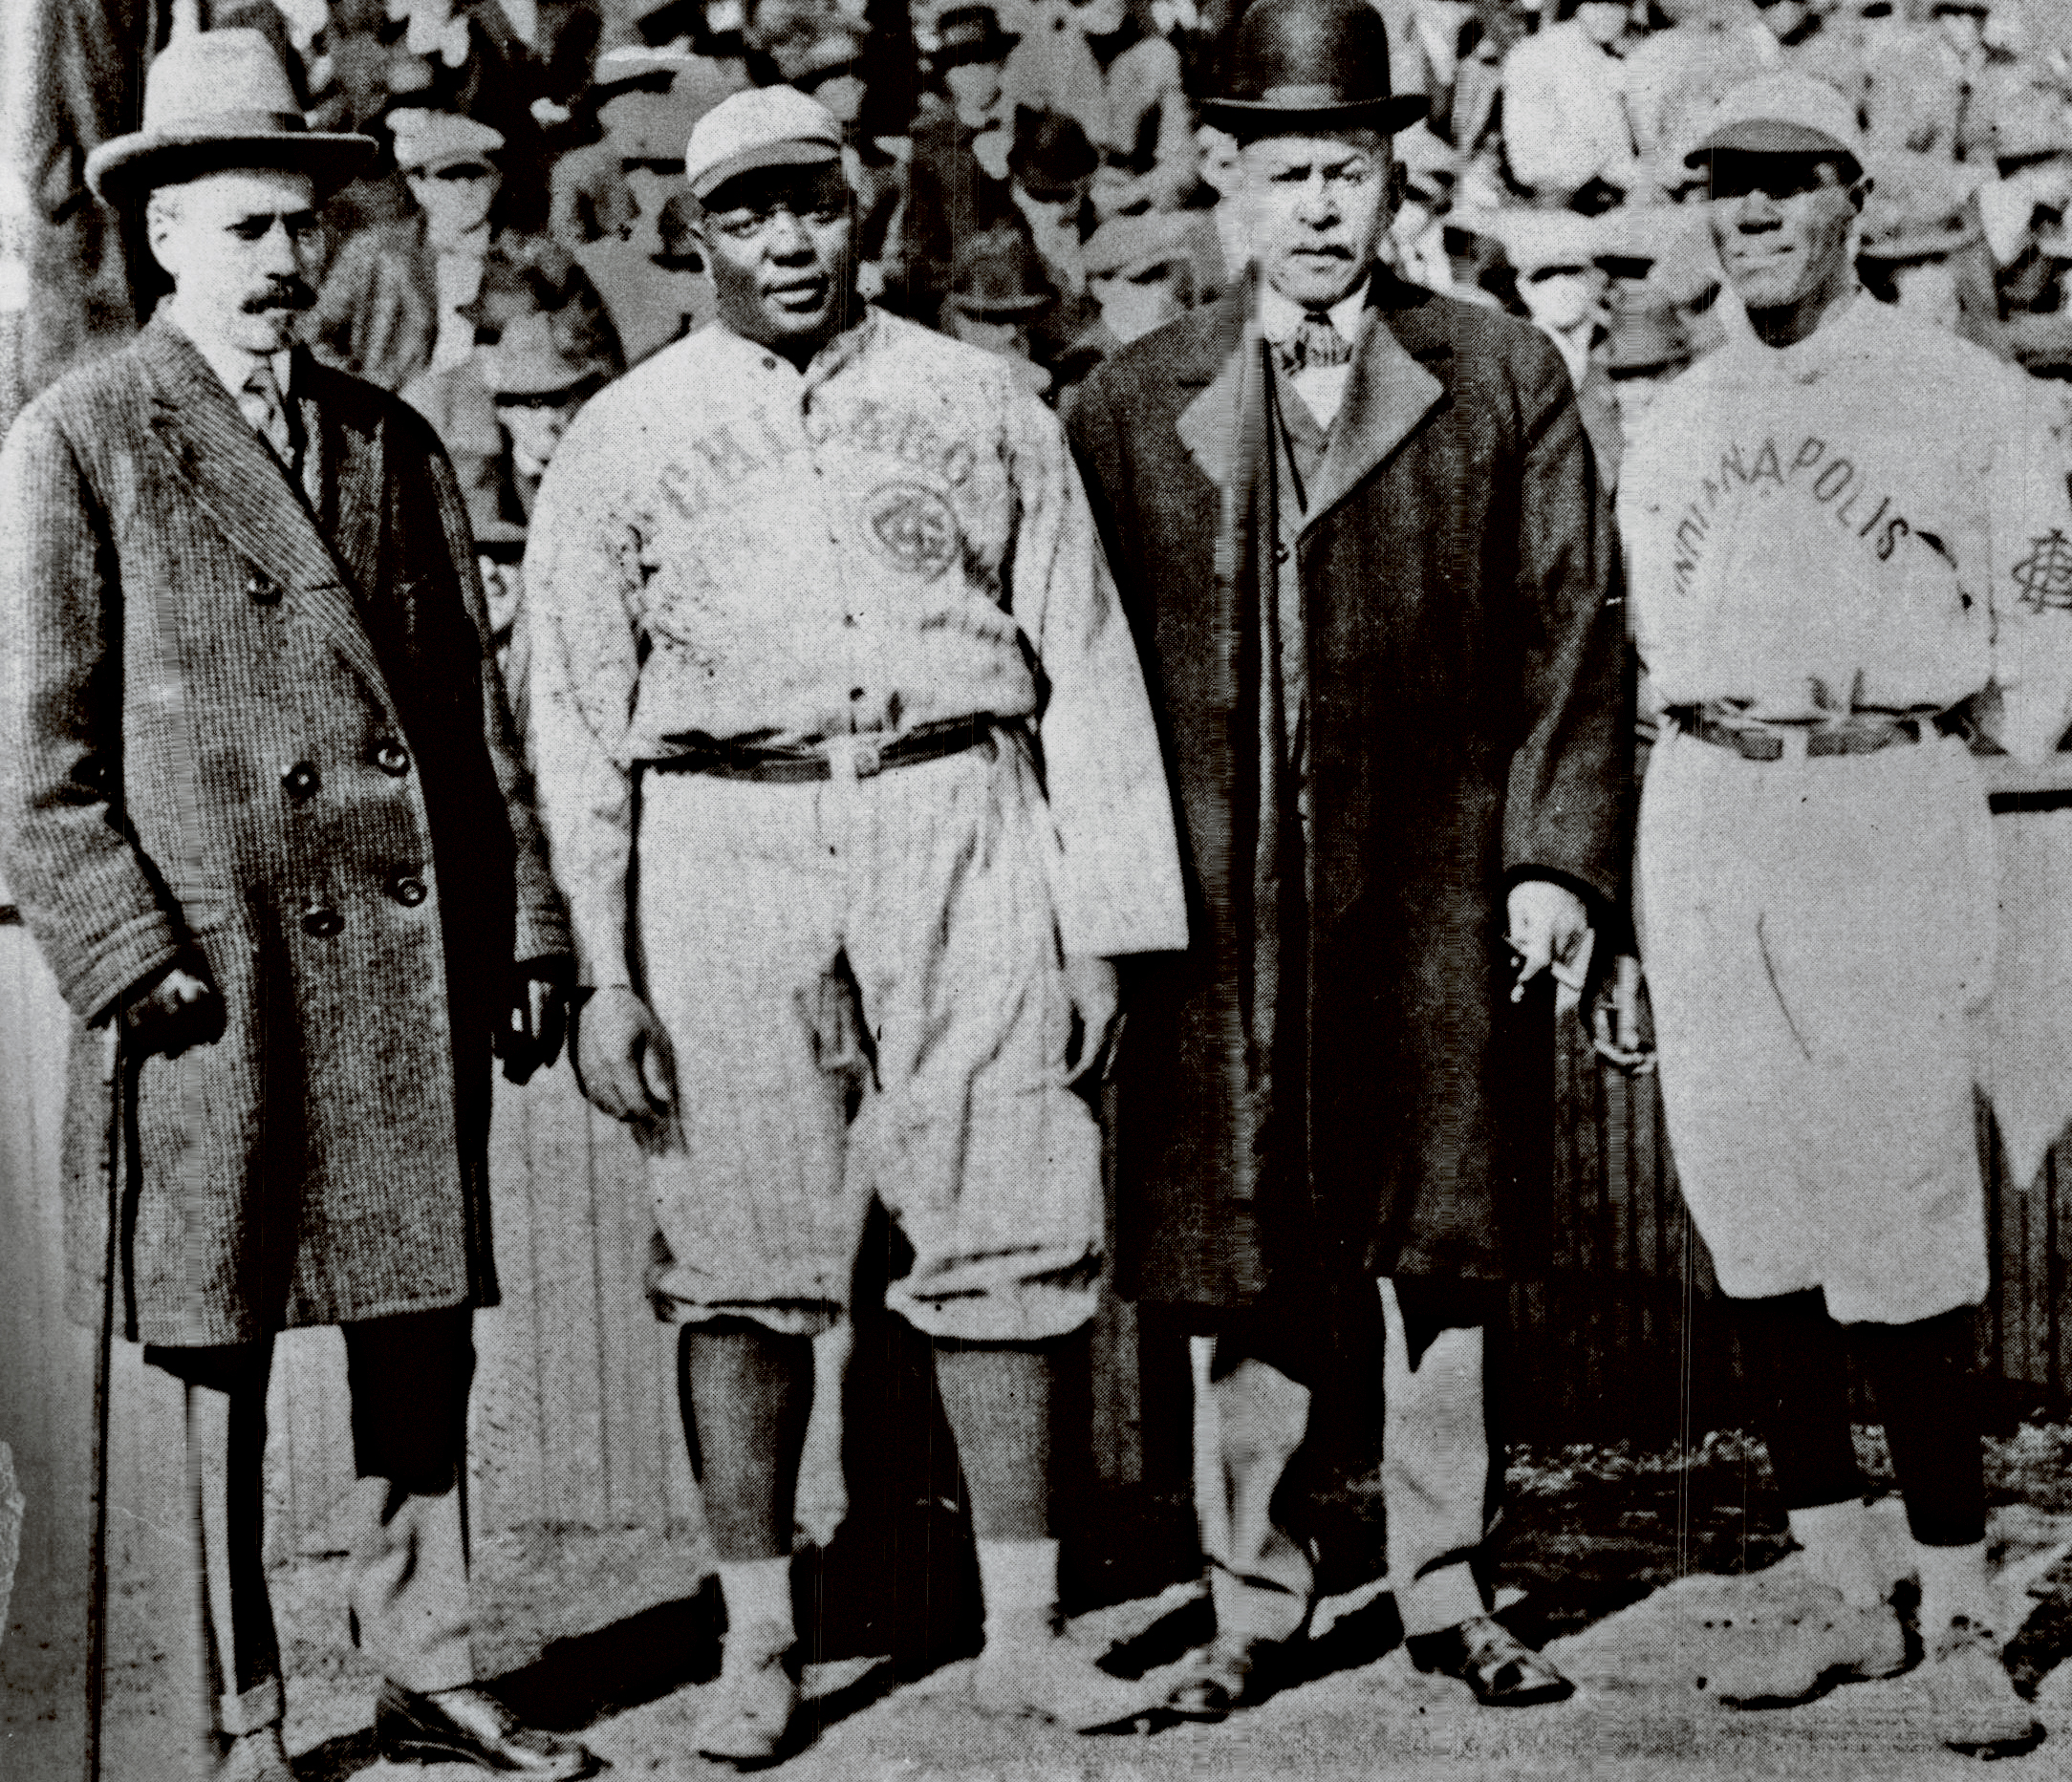 Rube Foster (pictured second from left in a rare postcard photo) was pitcher, then manager of a team he organized, the Chicago American Giants, in the Negro National League, which he founded.